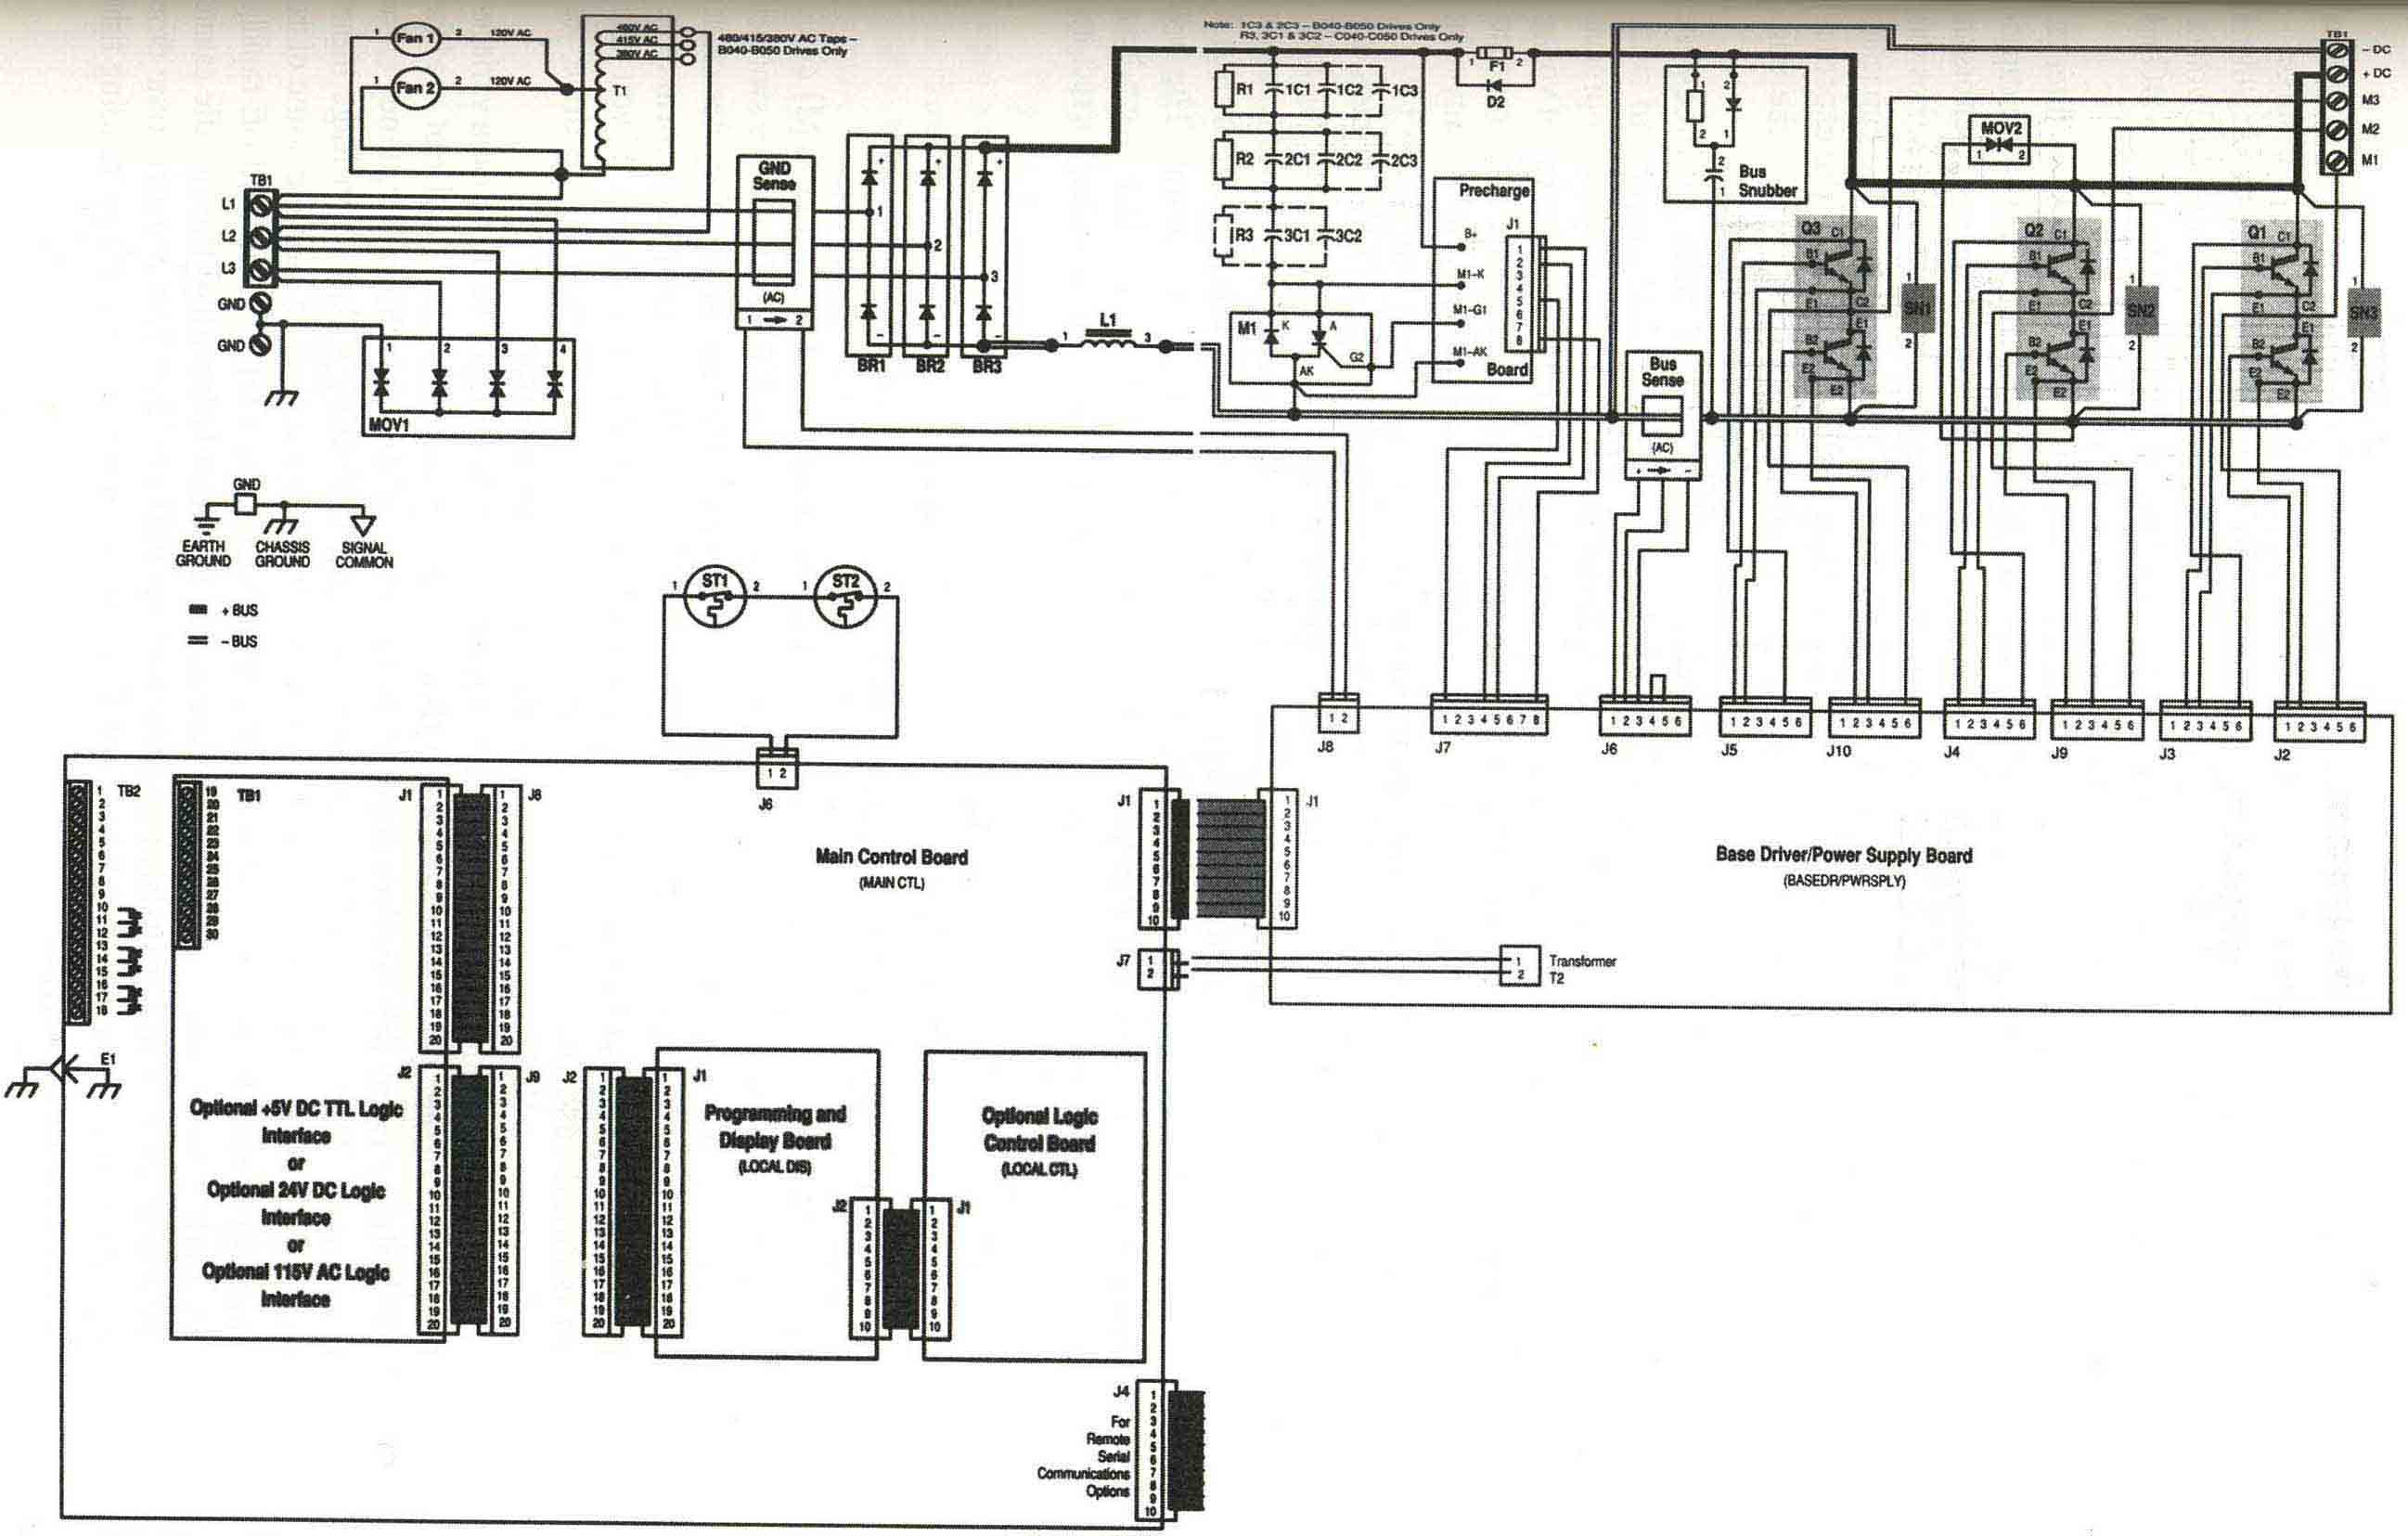 Larrera 4 Model 89 Sheet 2 moreover Circuit Relay moreover 116061 Electrical House Wiring Made Easy Simple Tips Explored further American Standard 90 Furnace Wiring Diagram likewise Electrical Plan. on hvac electrical wiring diagrams